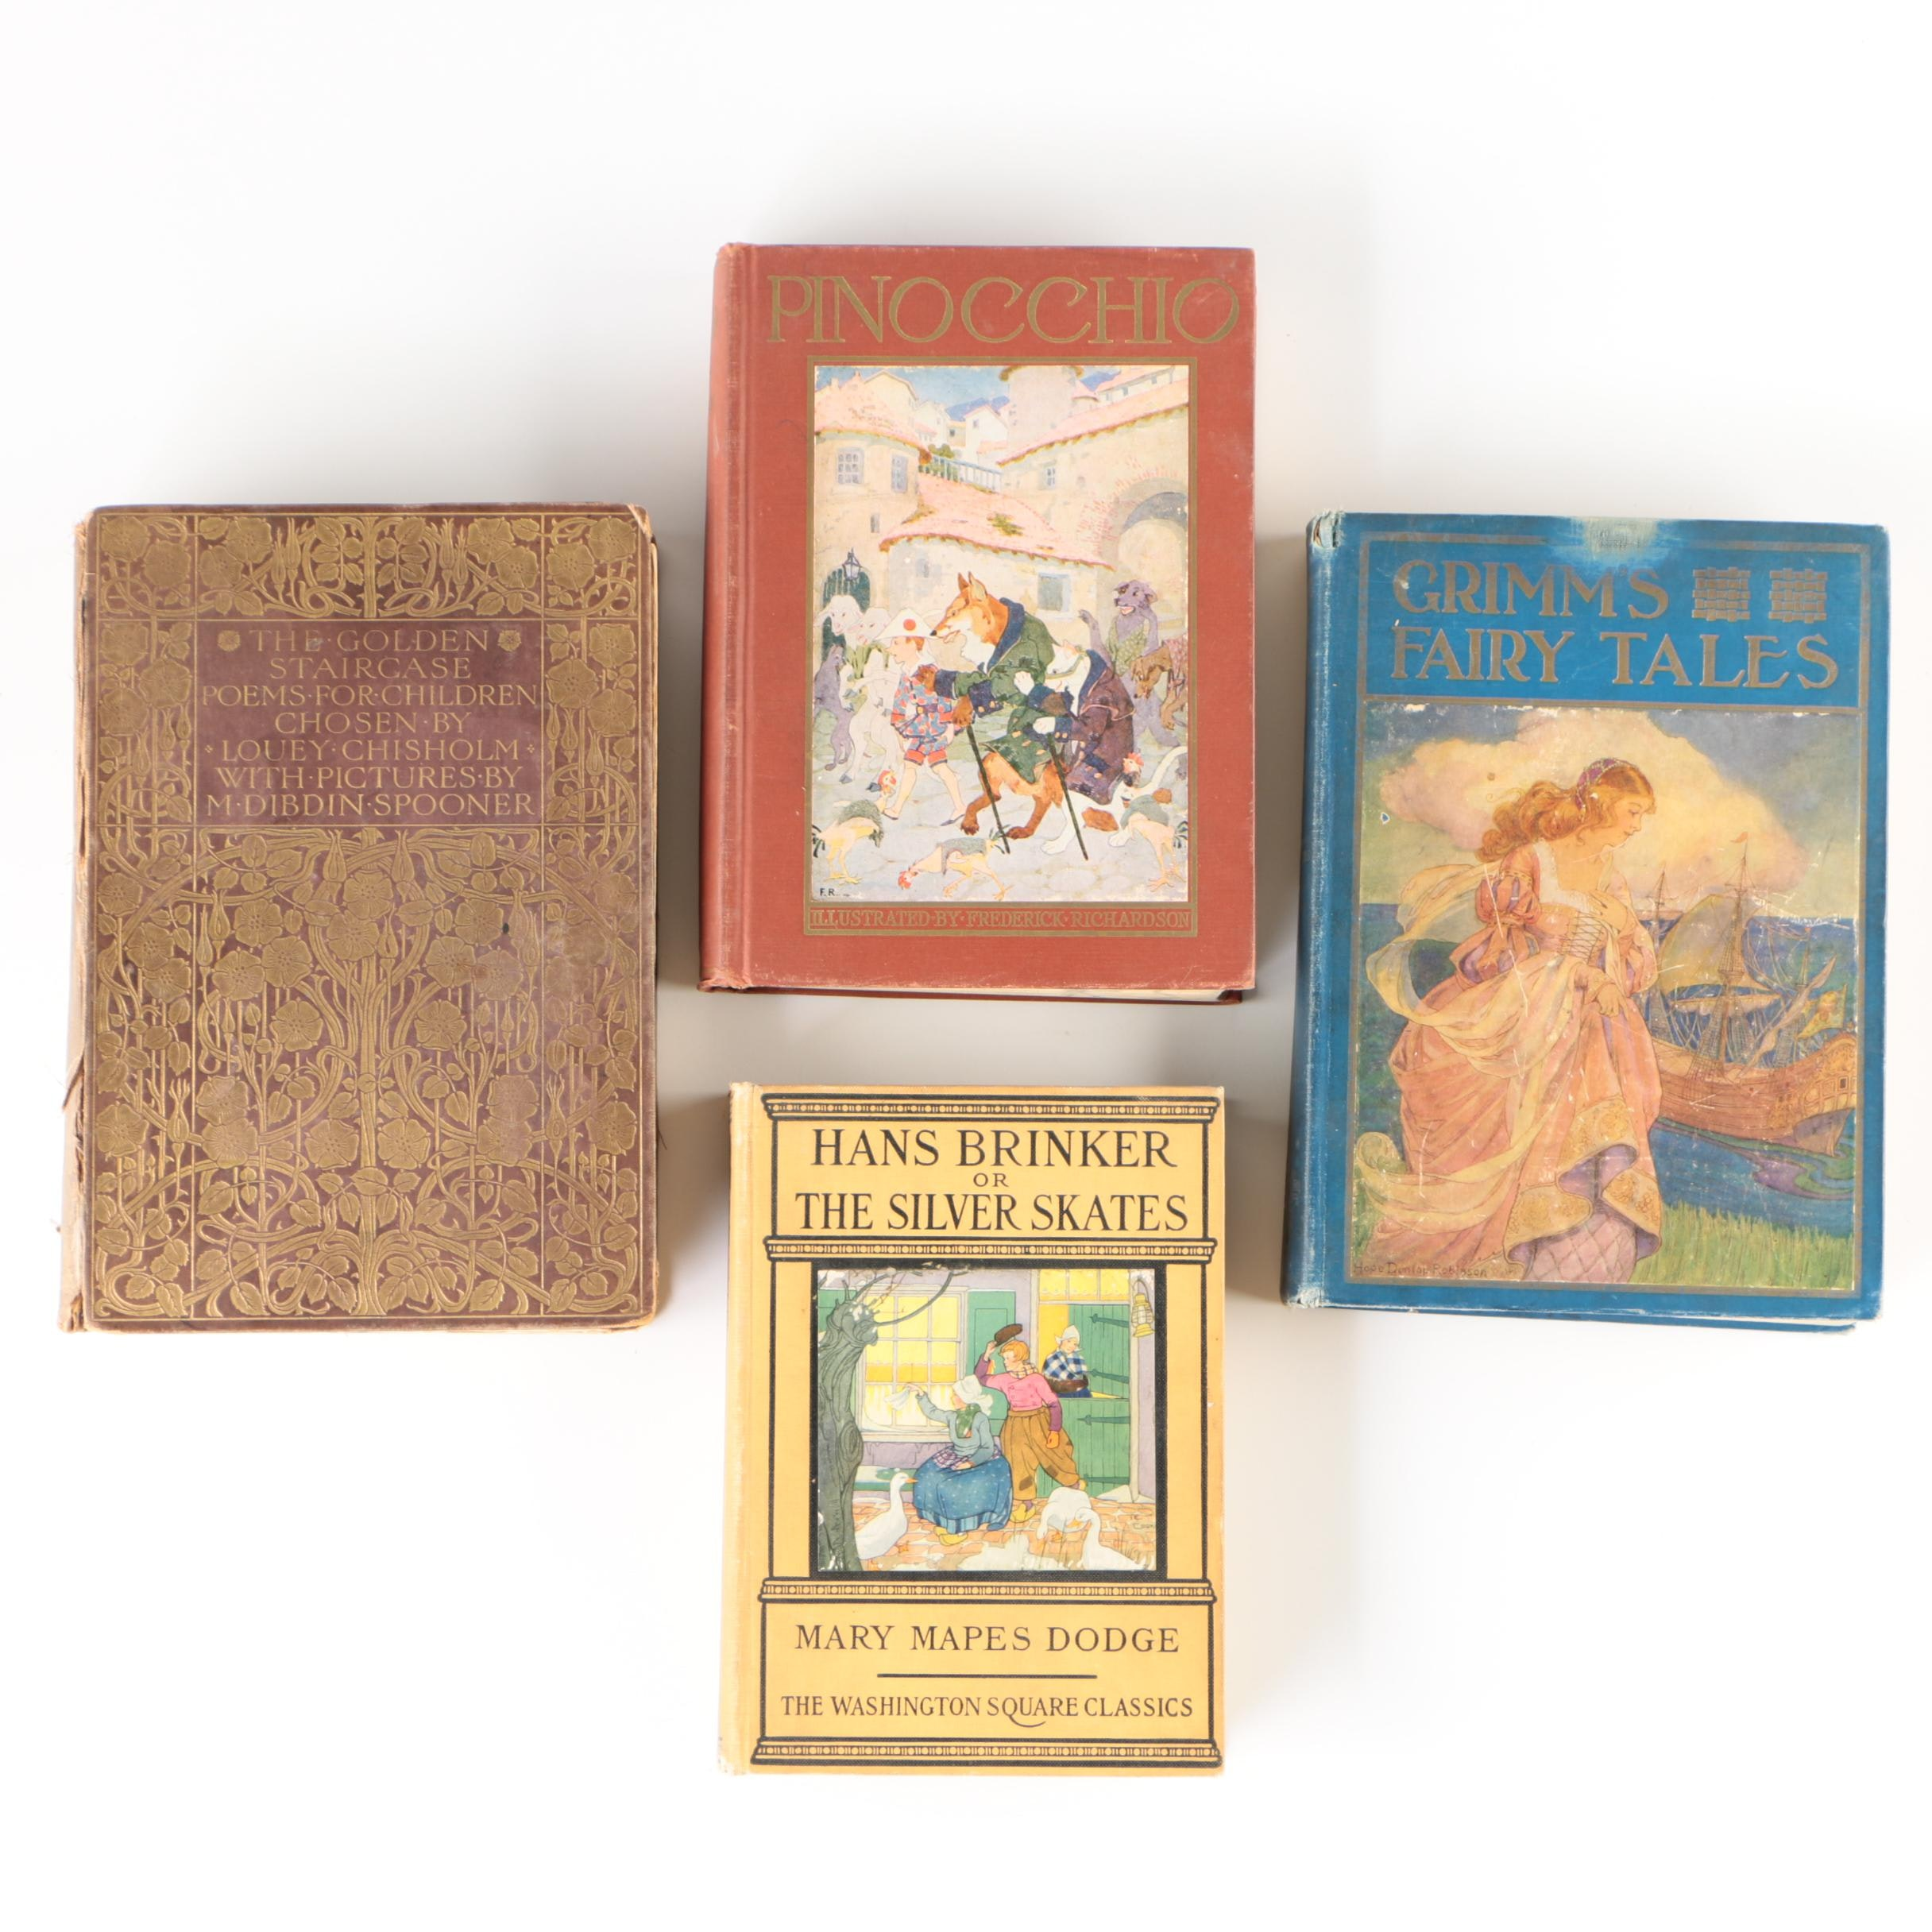 """Children's Books featuring """"Grimm's Fairy Tales"""" and """"Pinocchio"""""""